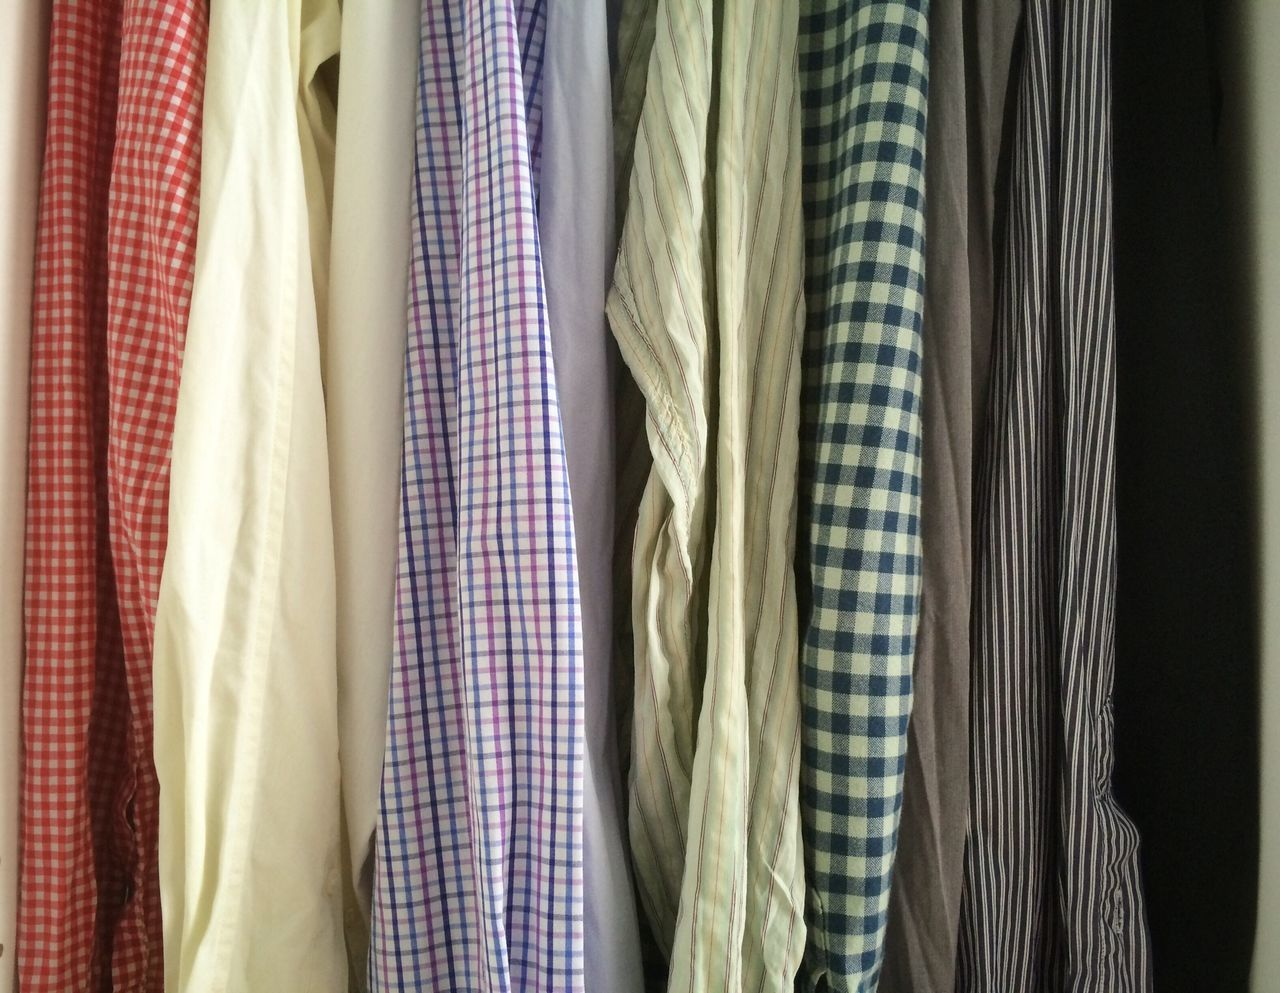 Button Down Shirt, Checked Pattern, Choice, Close-Up, Closet